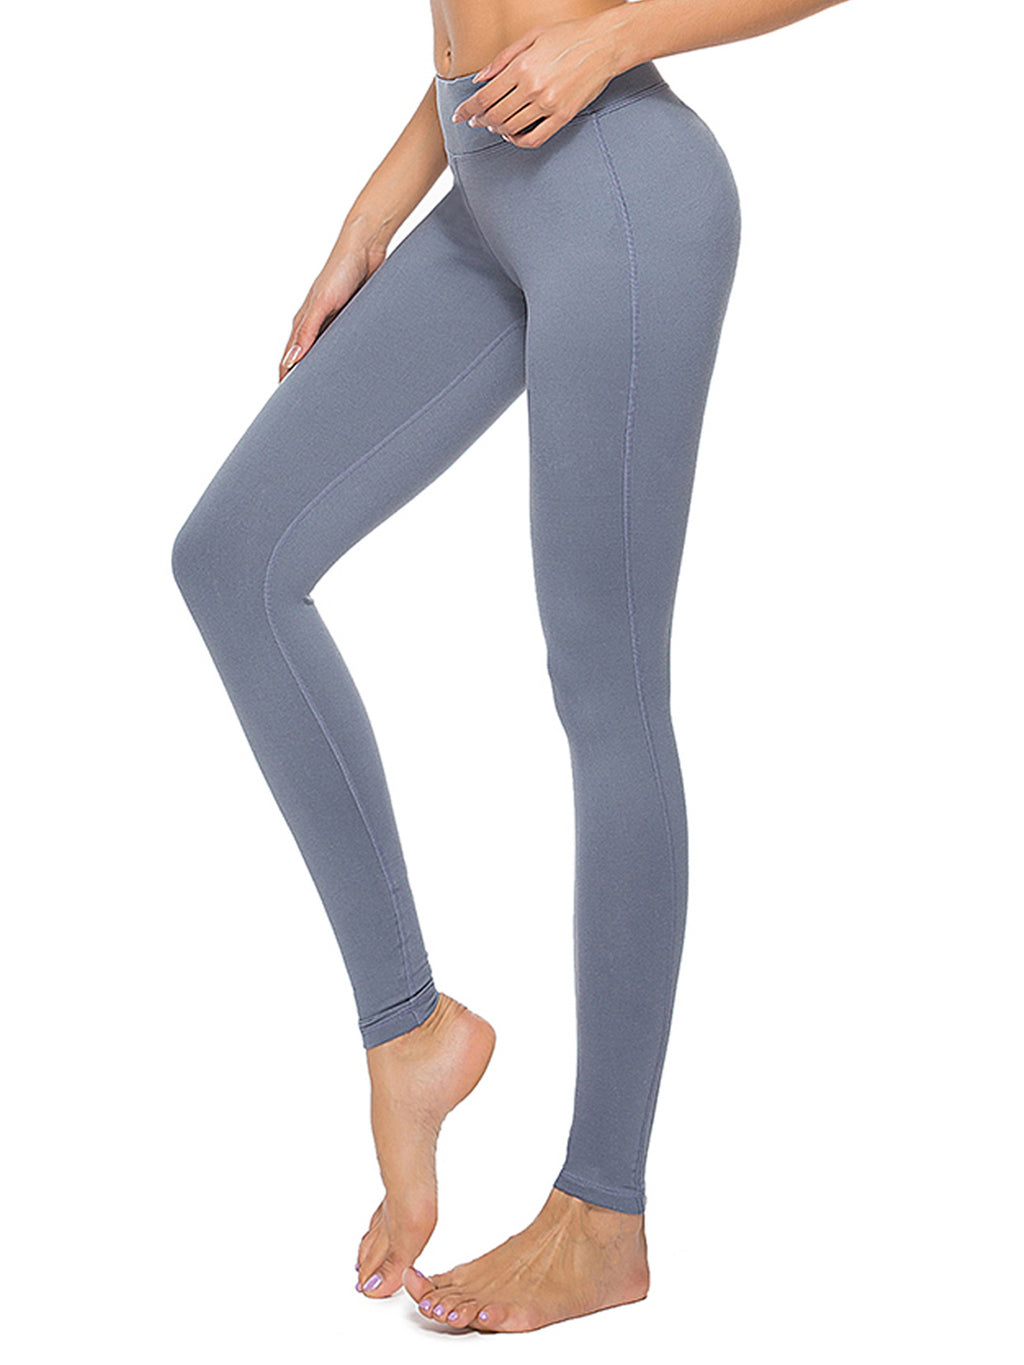 Grey Yoga Pants - dh Garment